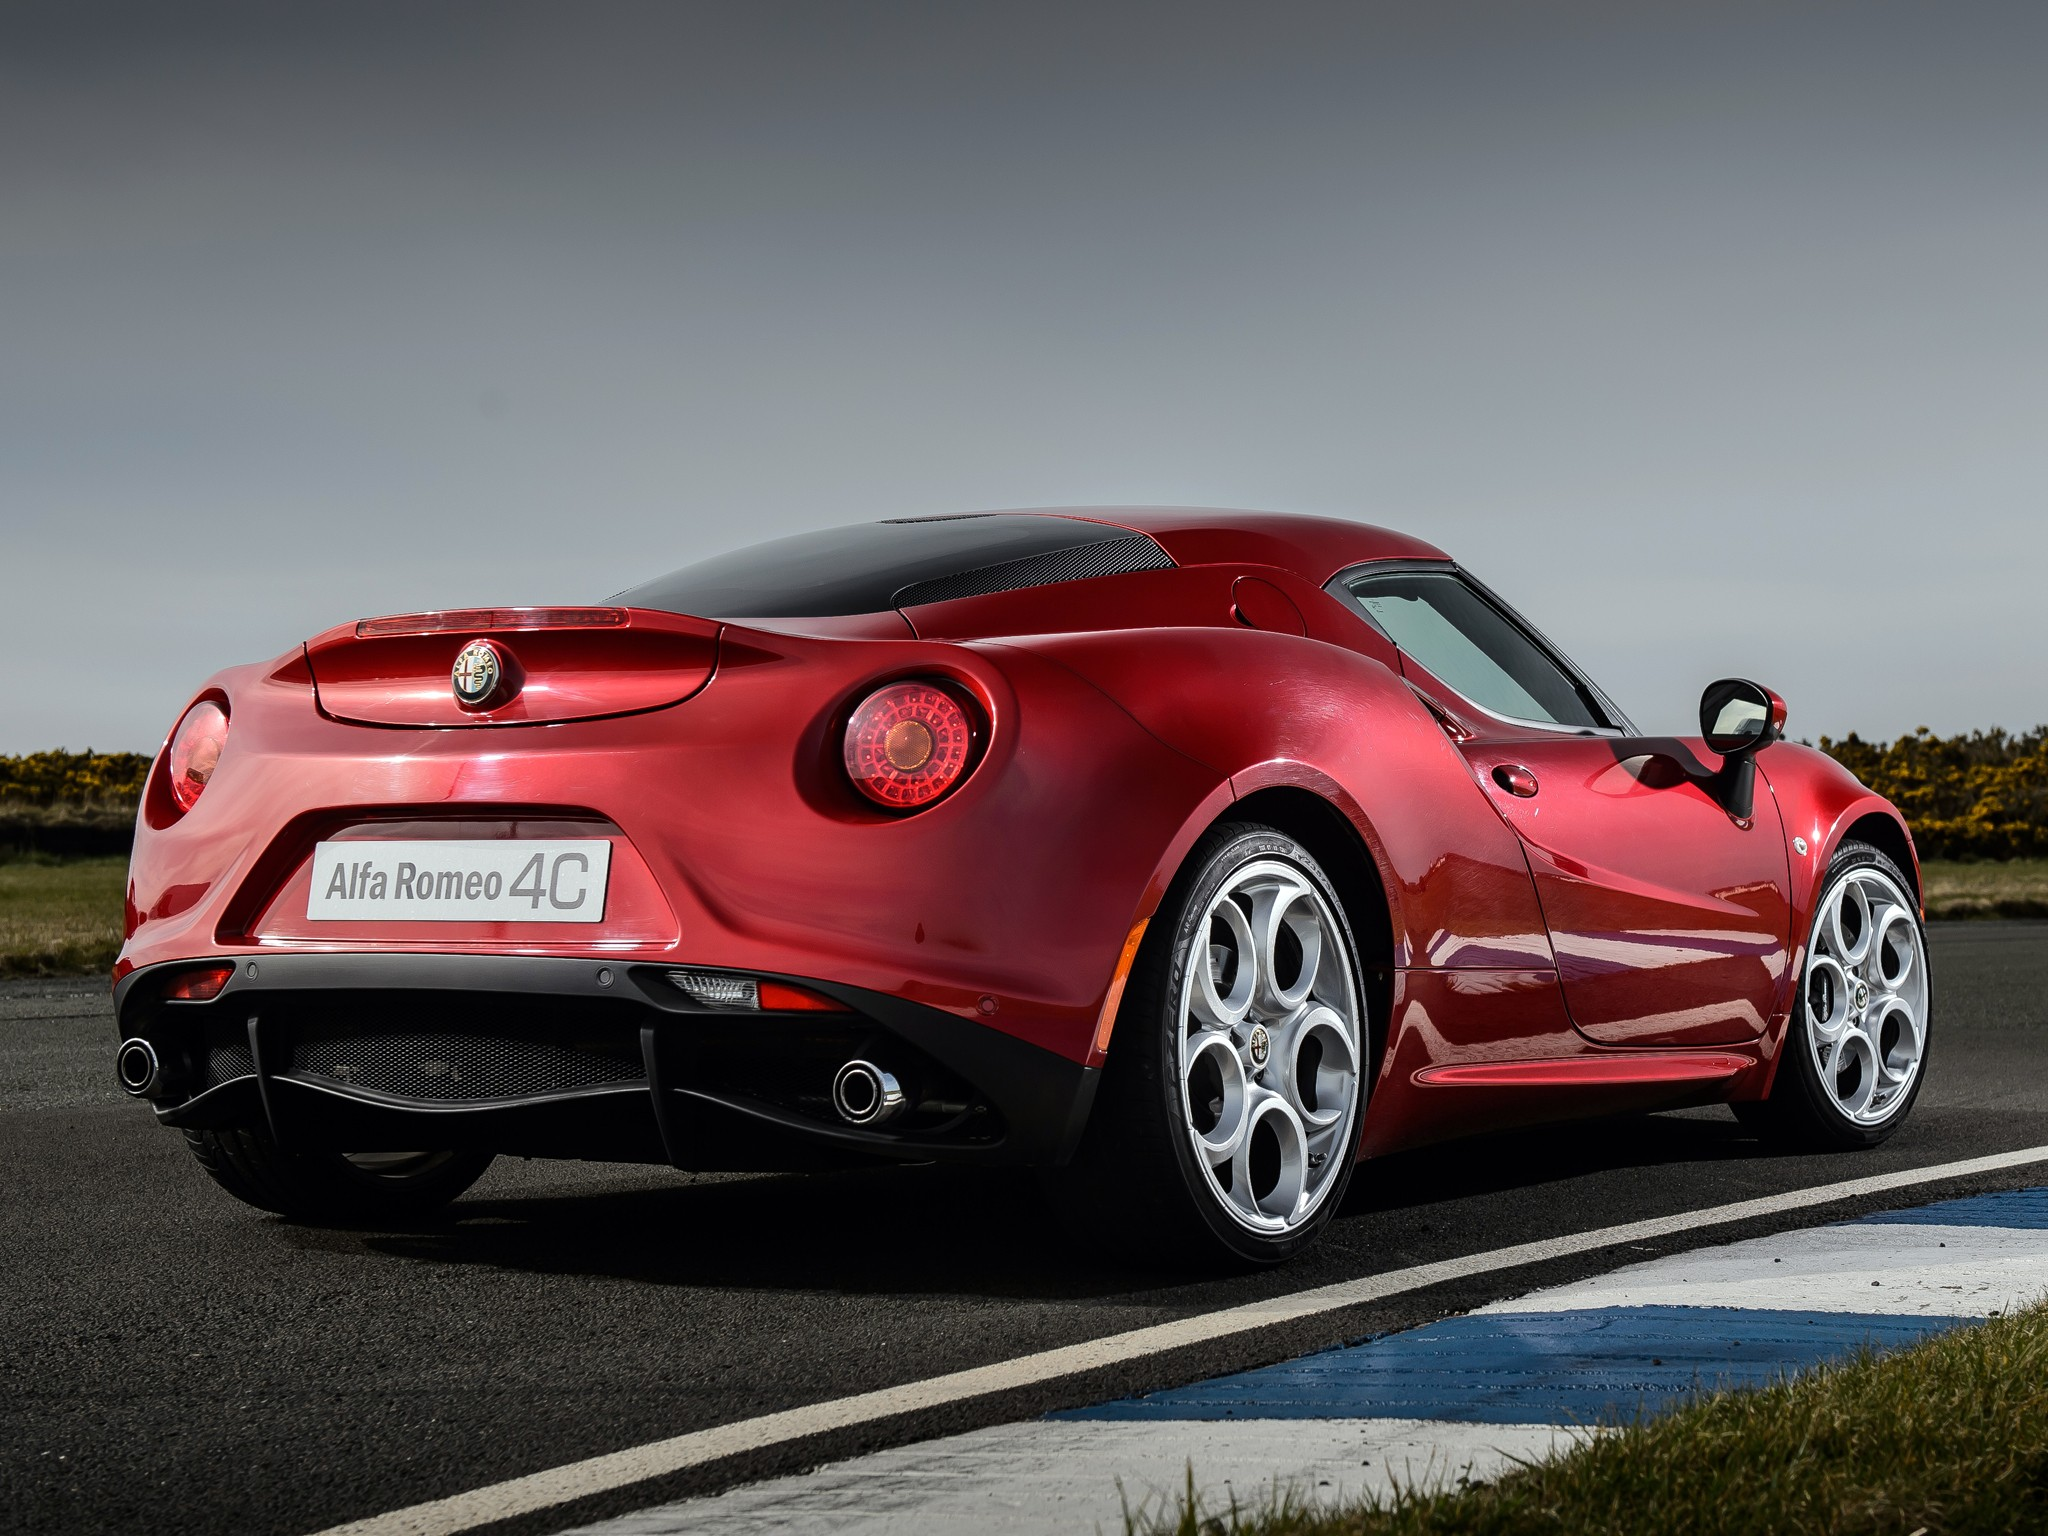 alfa romeo 4c specs photos 2013 2014 2015 2016 2017 2018 autoevolution. Black Bedroom Furniture Sets. Home Design Ideas